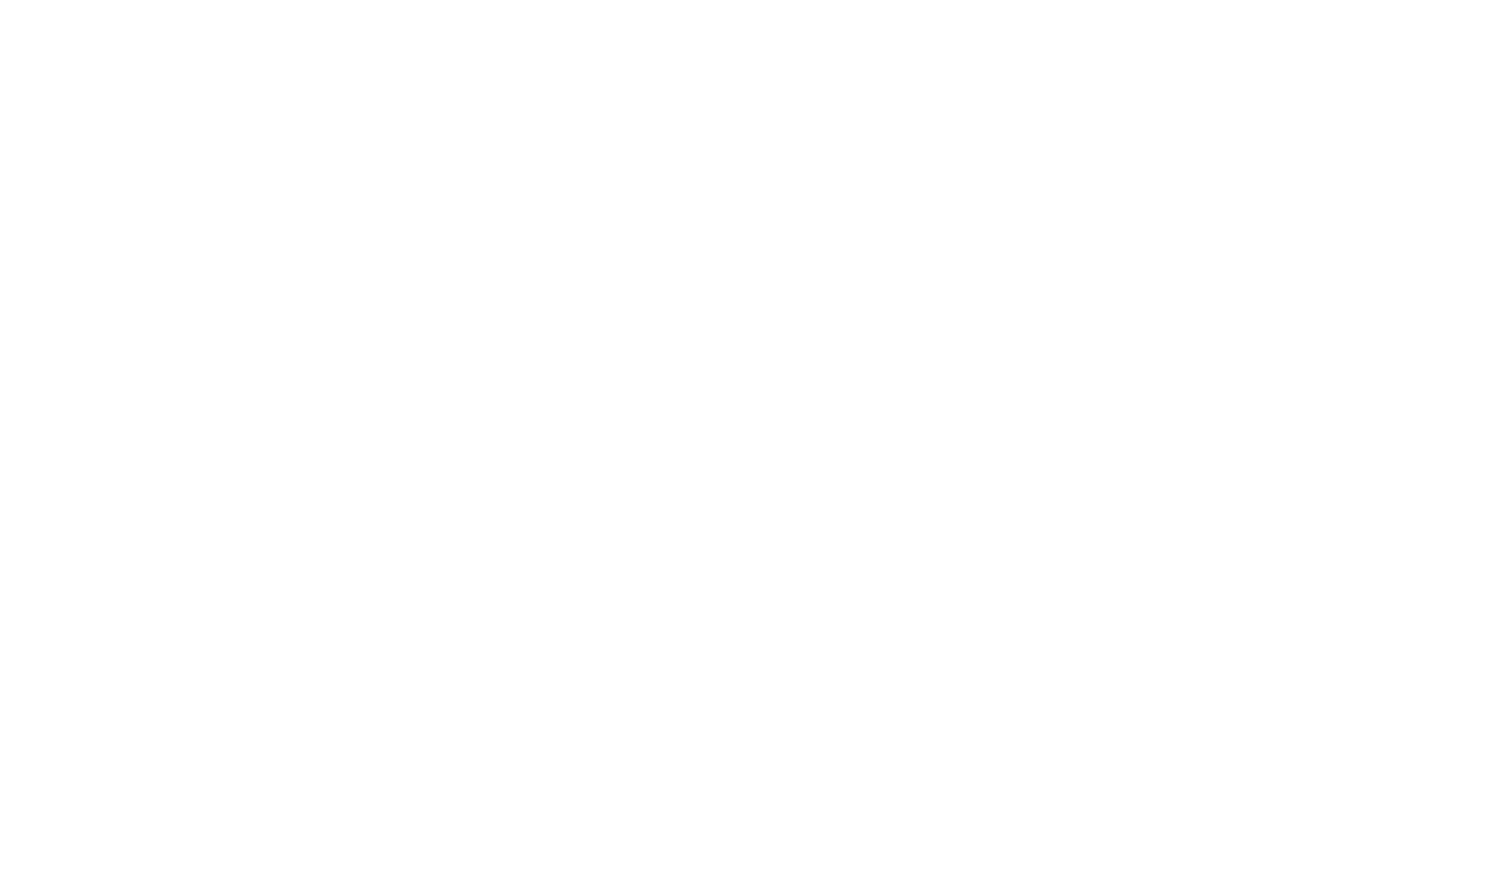 Judge Security Systems